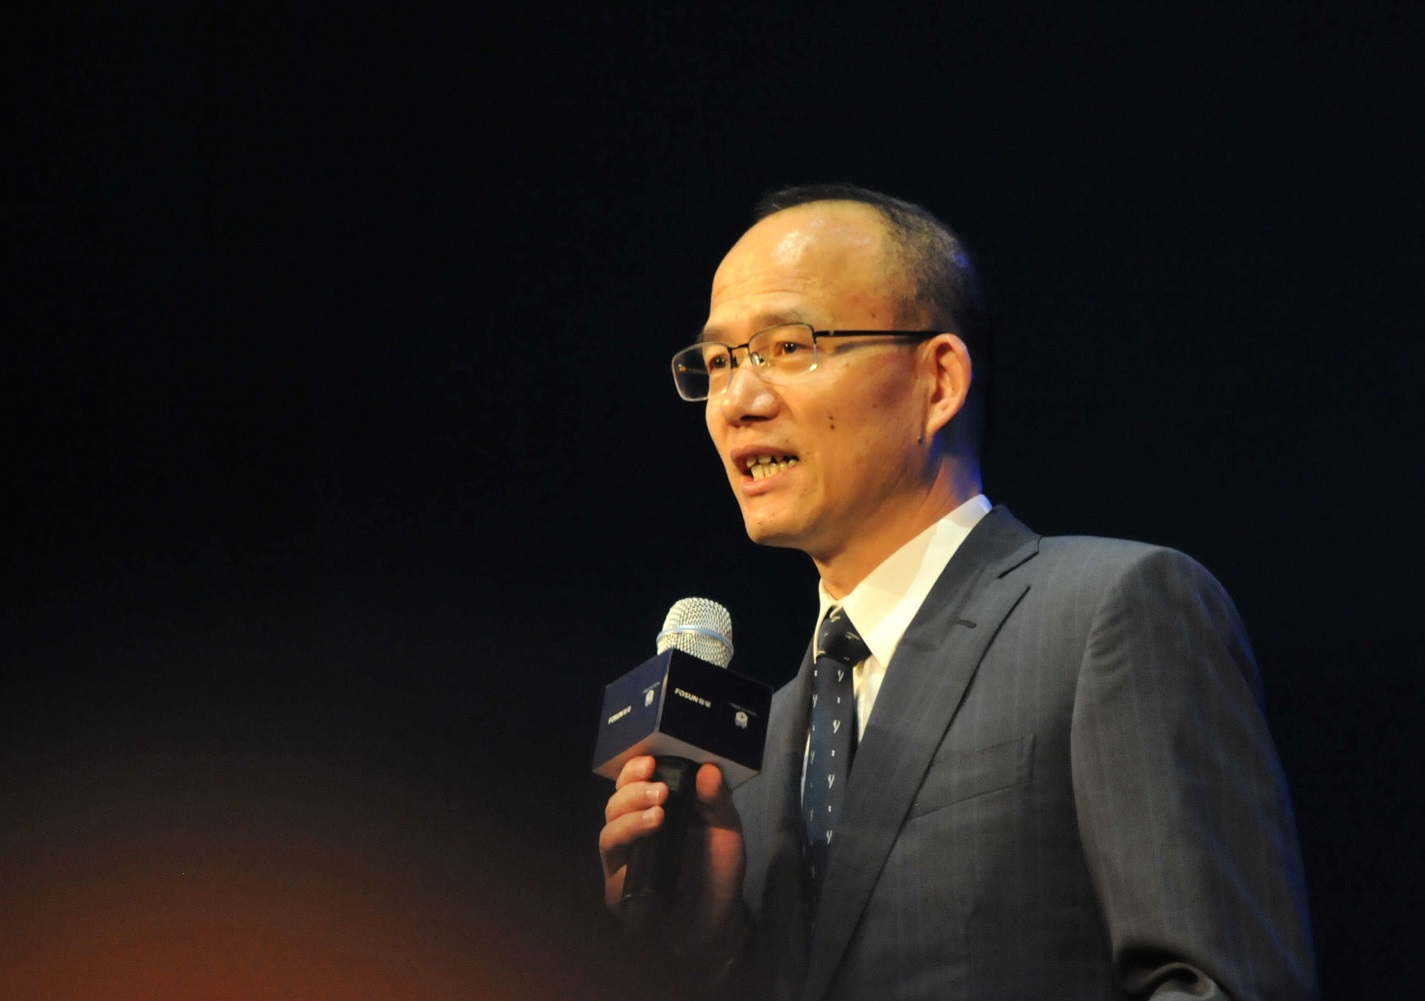 Missing Chinese Executive Guo Guangchang Is Released (Report)